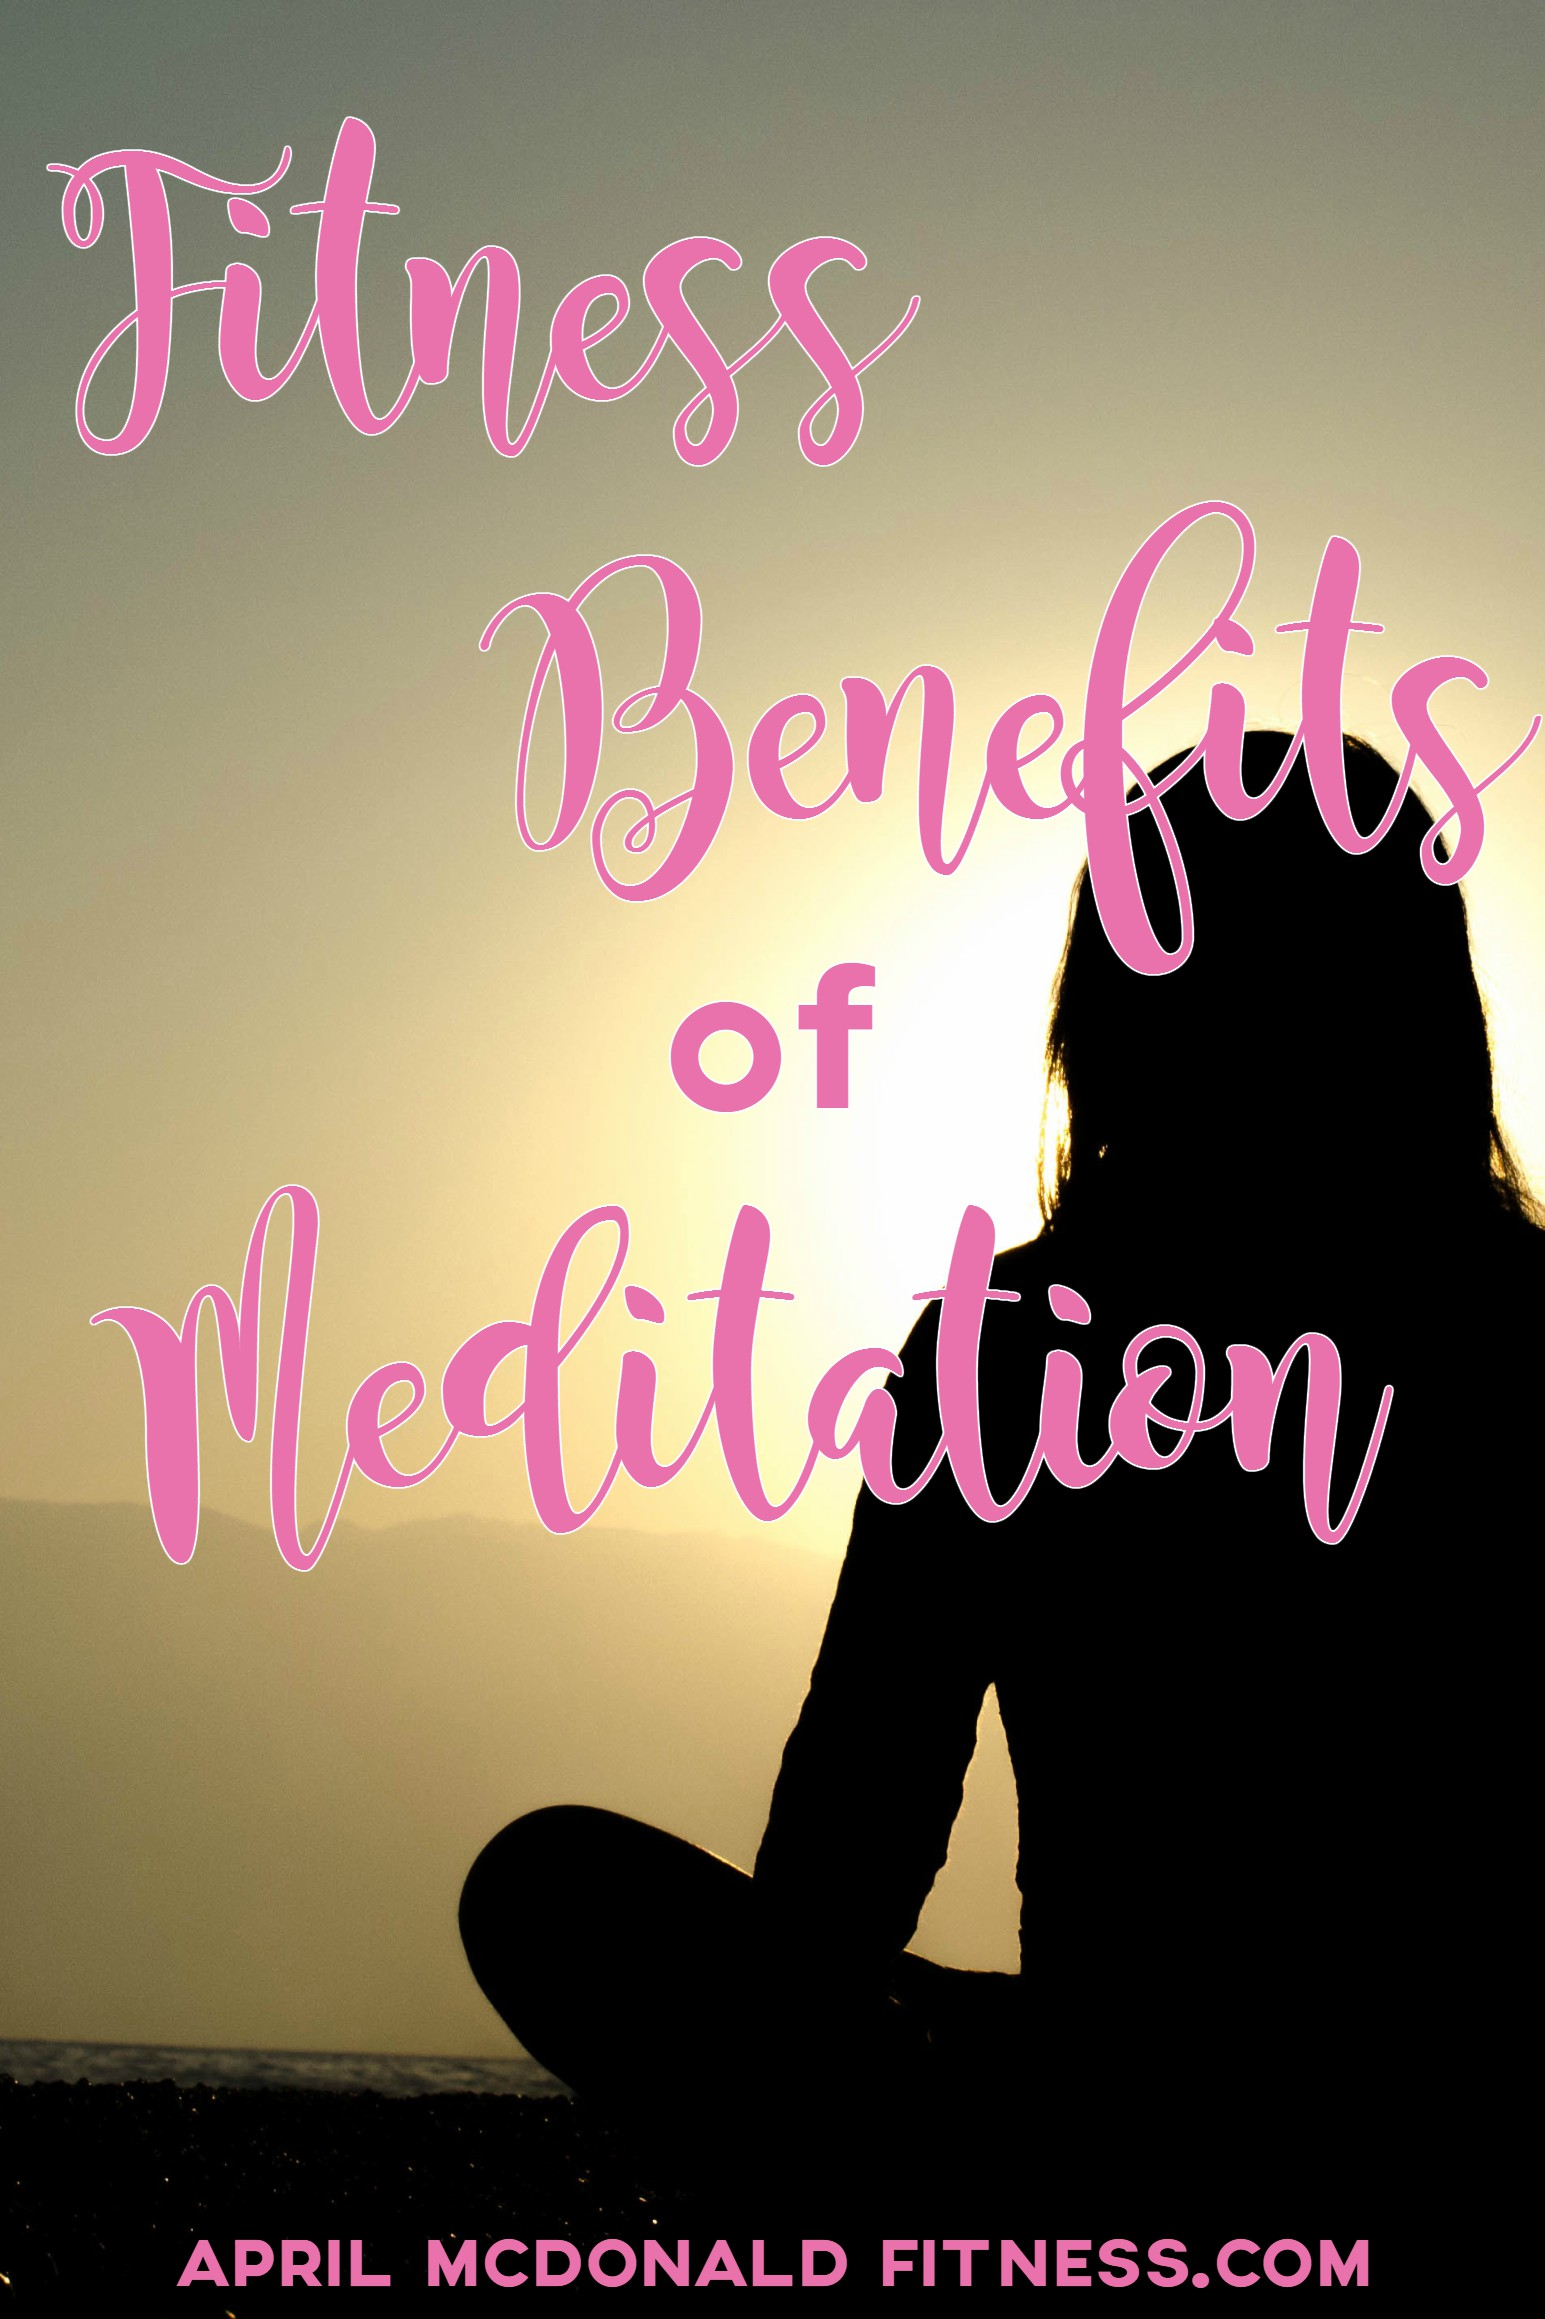 Need an extra boost to help you physically? Need more peace to be more productive and finish those HIIT workouts? Try meditation. It has a ton of fitness benefits!